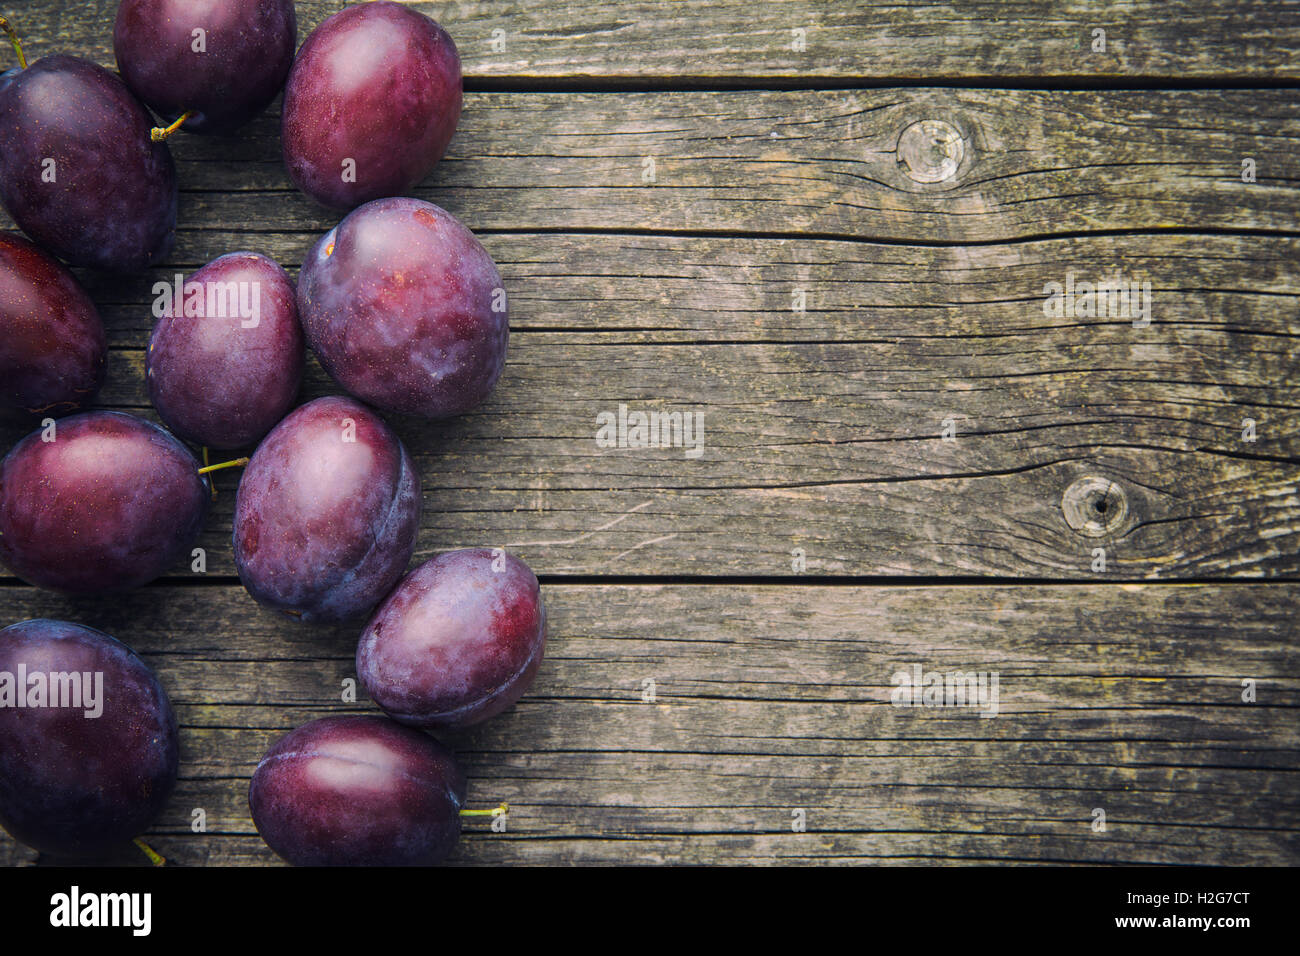 Fresh ripe plums on old wooden table. Top view. - Stock Image